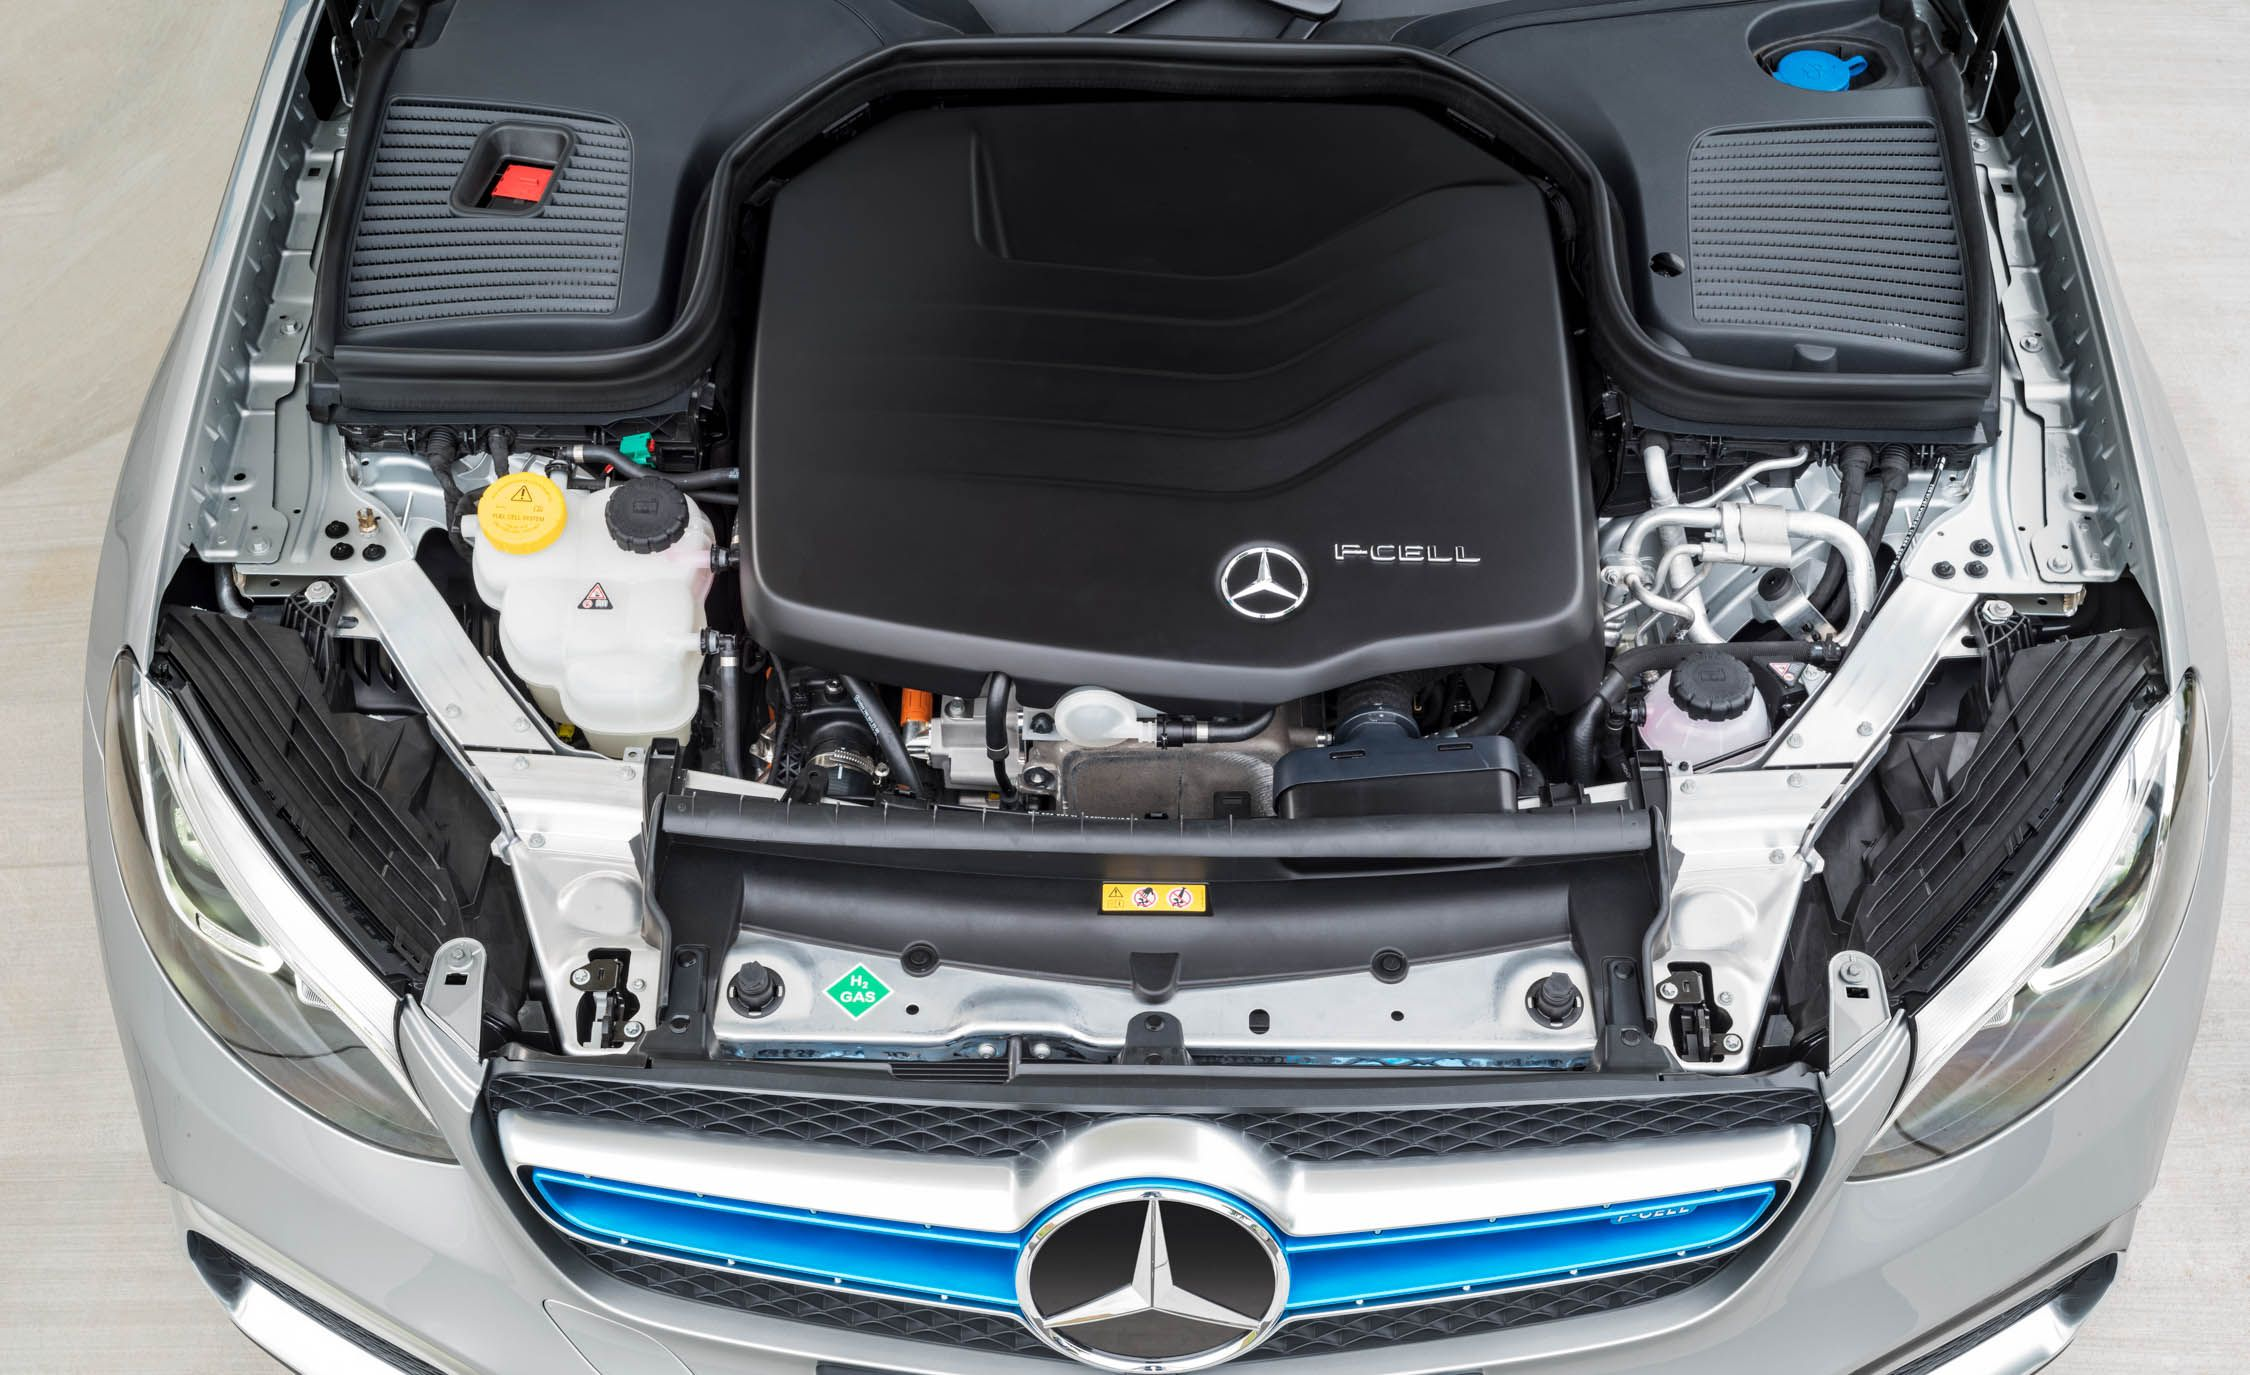 The Hydrogen And Battery Ed Mercedes Benz Glc F Cell Is Coming To U S In 2019